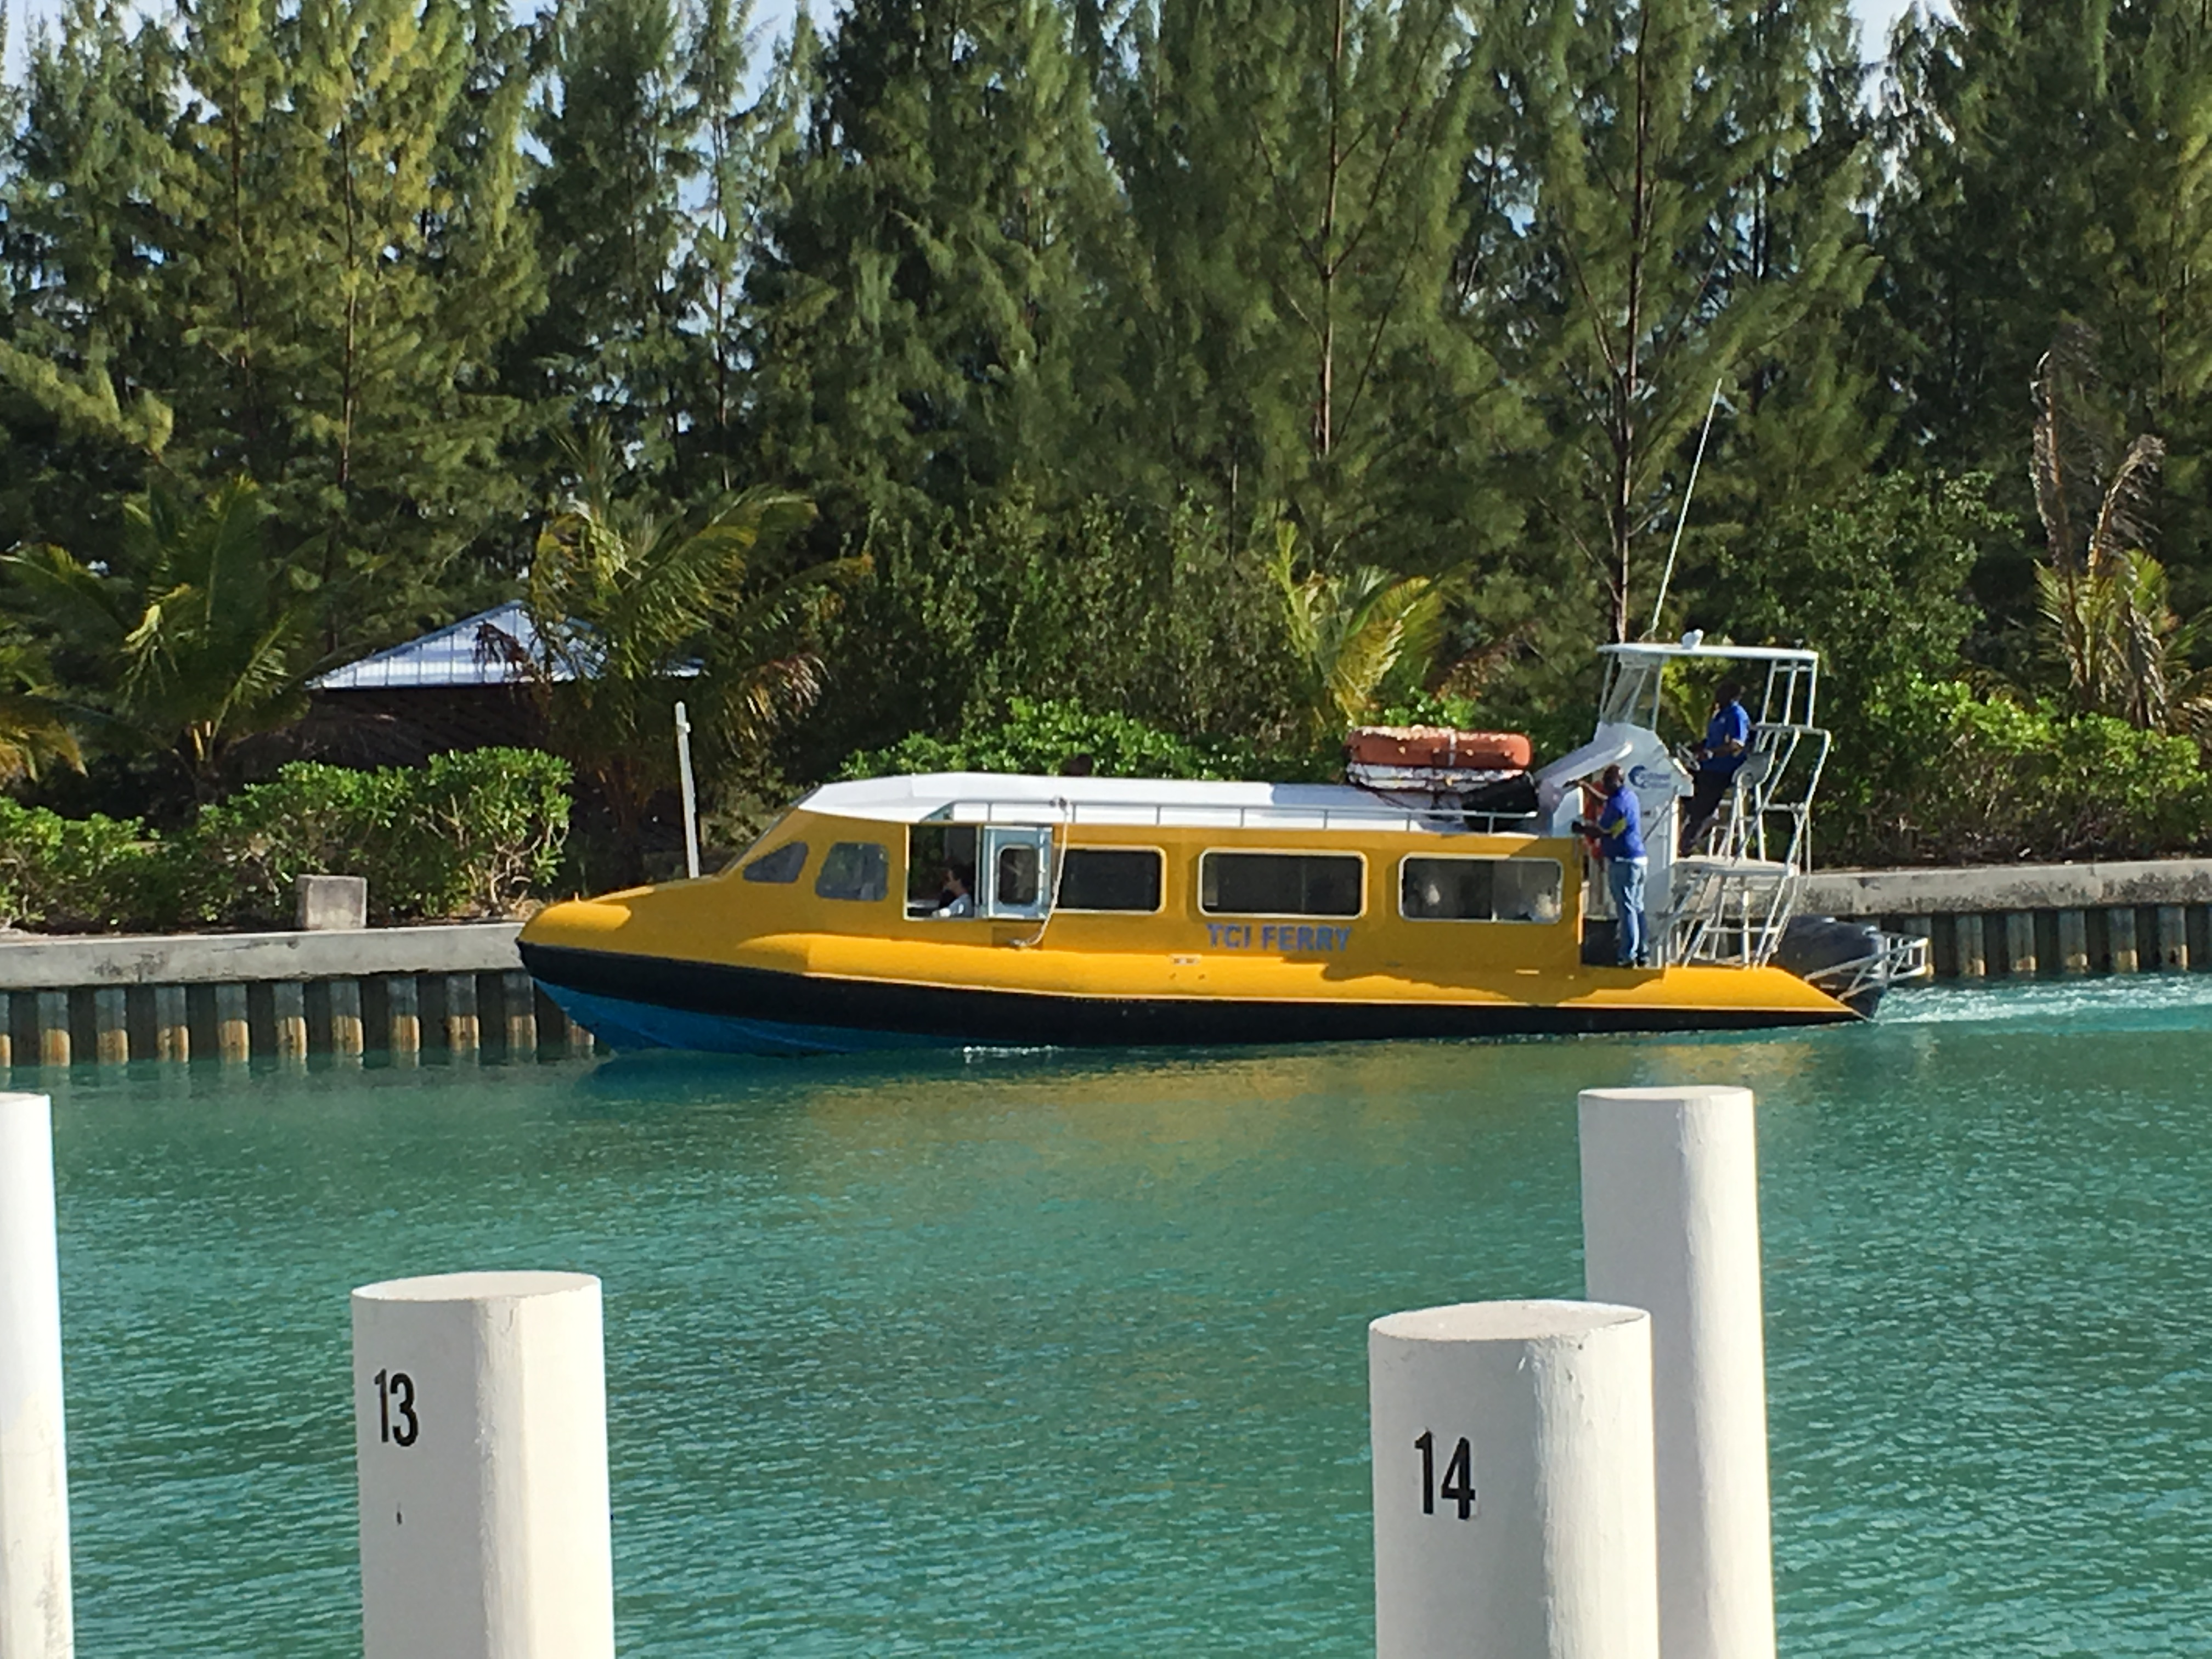 TCI Ferry to North and MIddle Caicos - Turks & Caicos Island Guide - DIY Daytrip to North and Middle Caicos